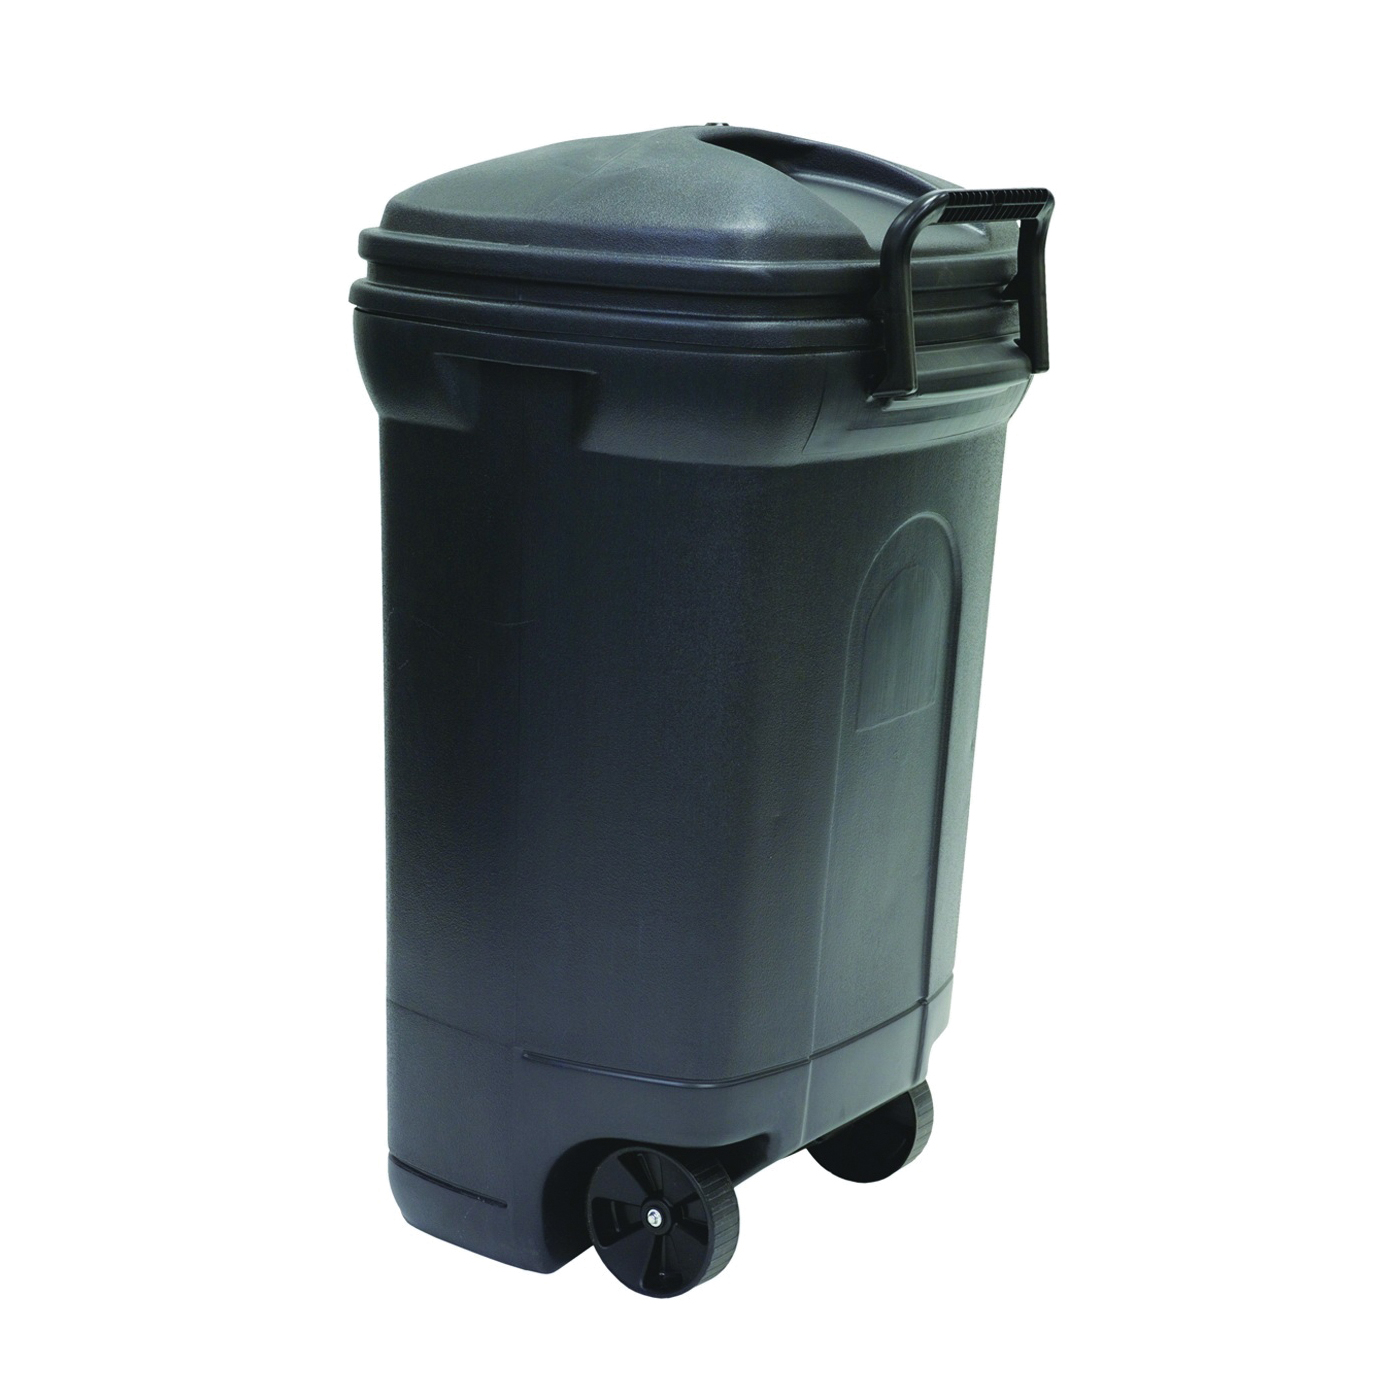 Picture of United Solutions TB0010 Trash Can, 34 gal Capacity, Plastic, Black, Top Lid Closure